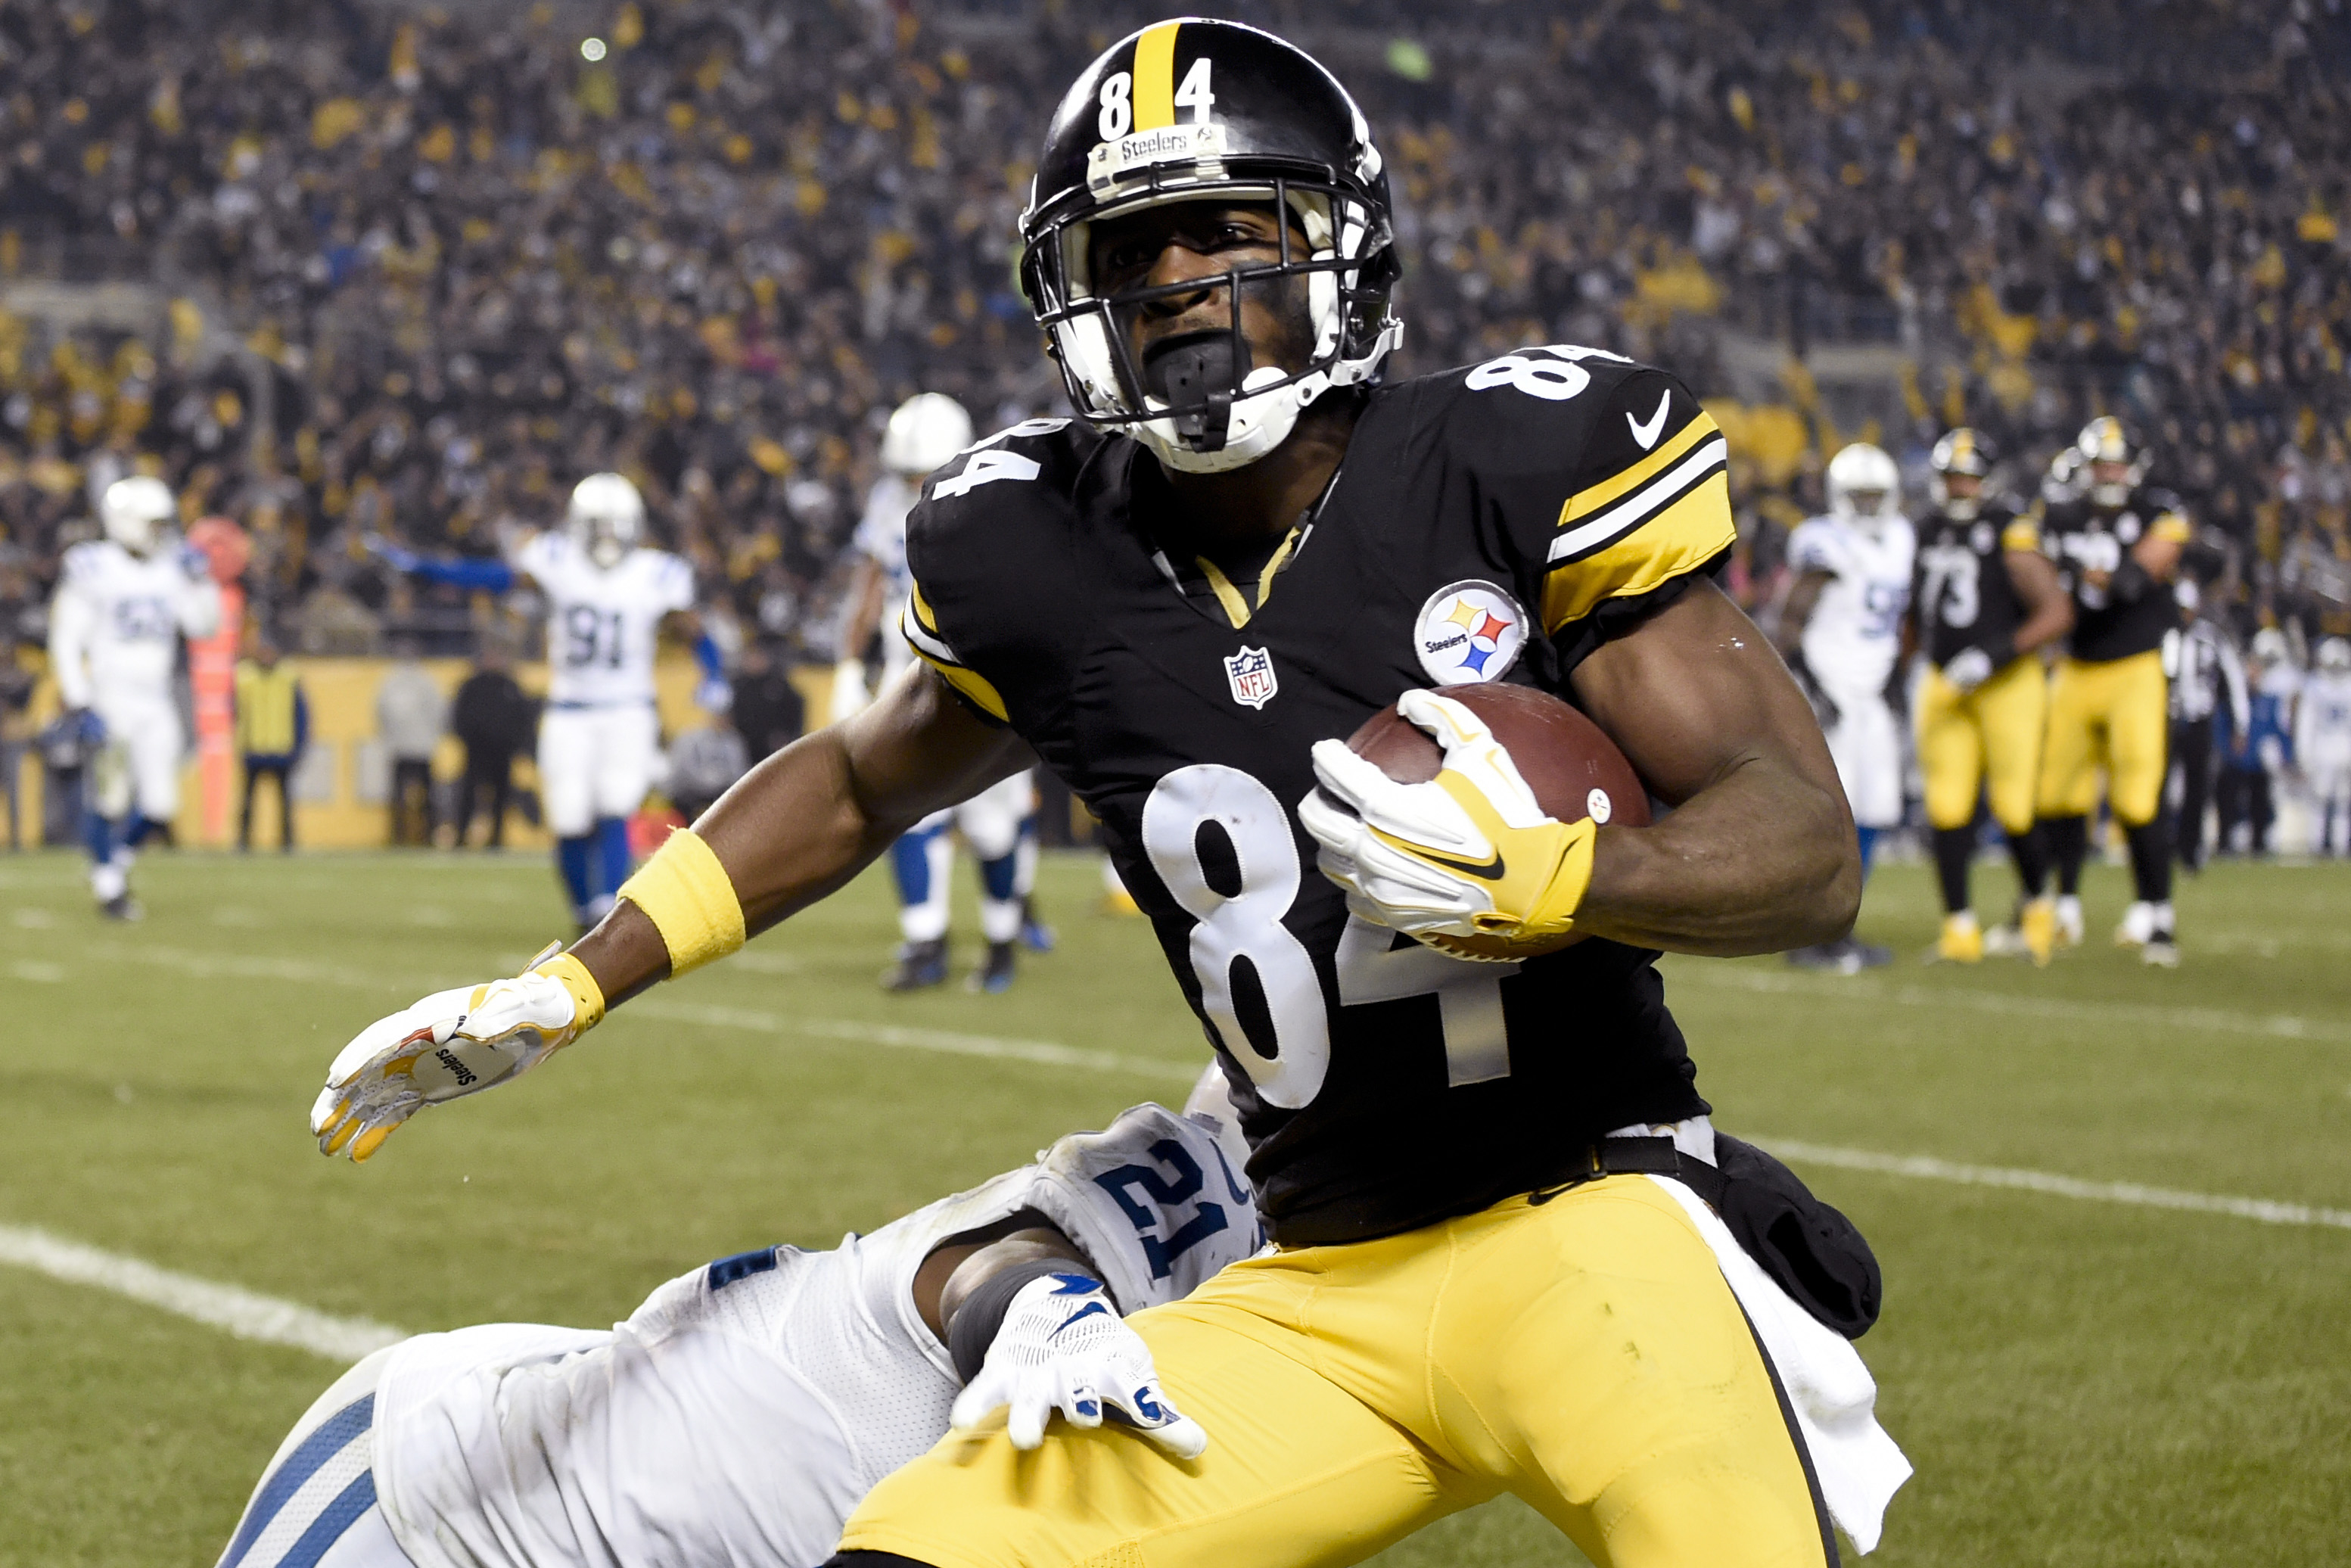 FILE - In this file photo from Dec. 6, 2015, Pittsburgh Steelers wide receiver Antonio Brown (84) catches a touchdown pass from quarterback Ben Roethlisberger with  Indianapolis Colts cornerback Vontae Davis (21) defending during the first half of an NFL